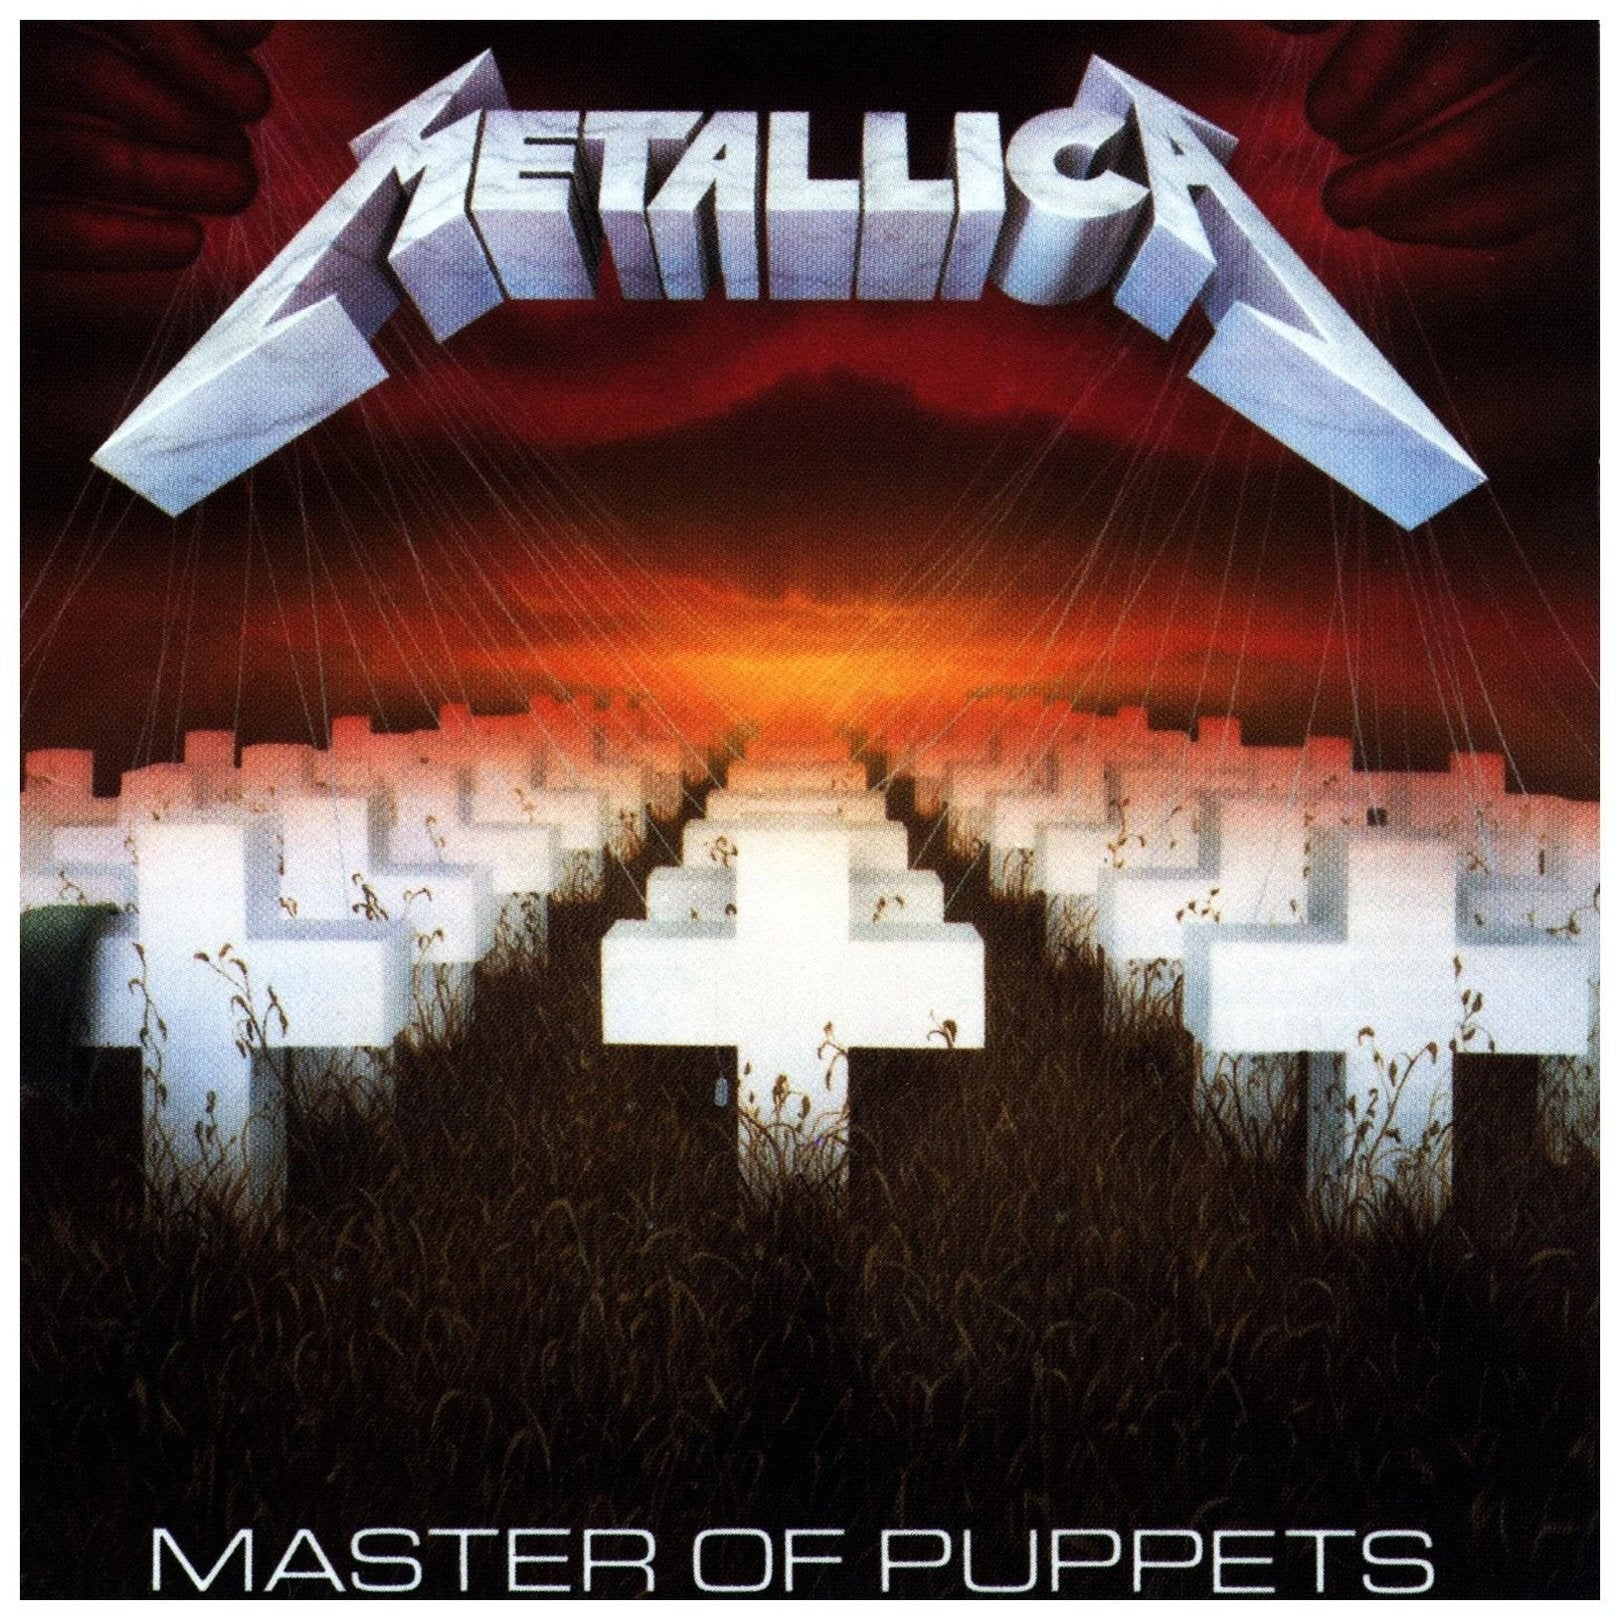 Metallica - Metallica - Master Of Puppets - Cd